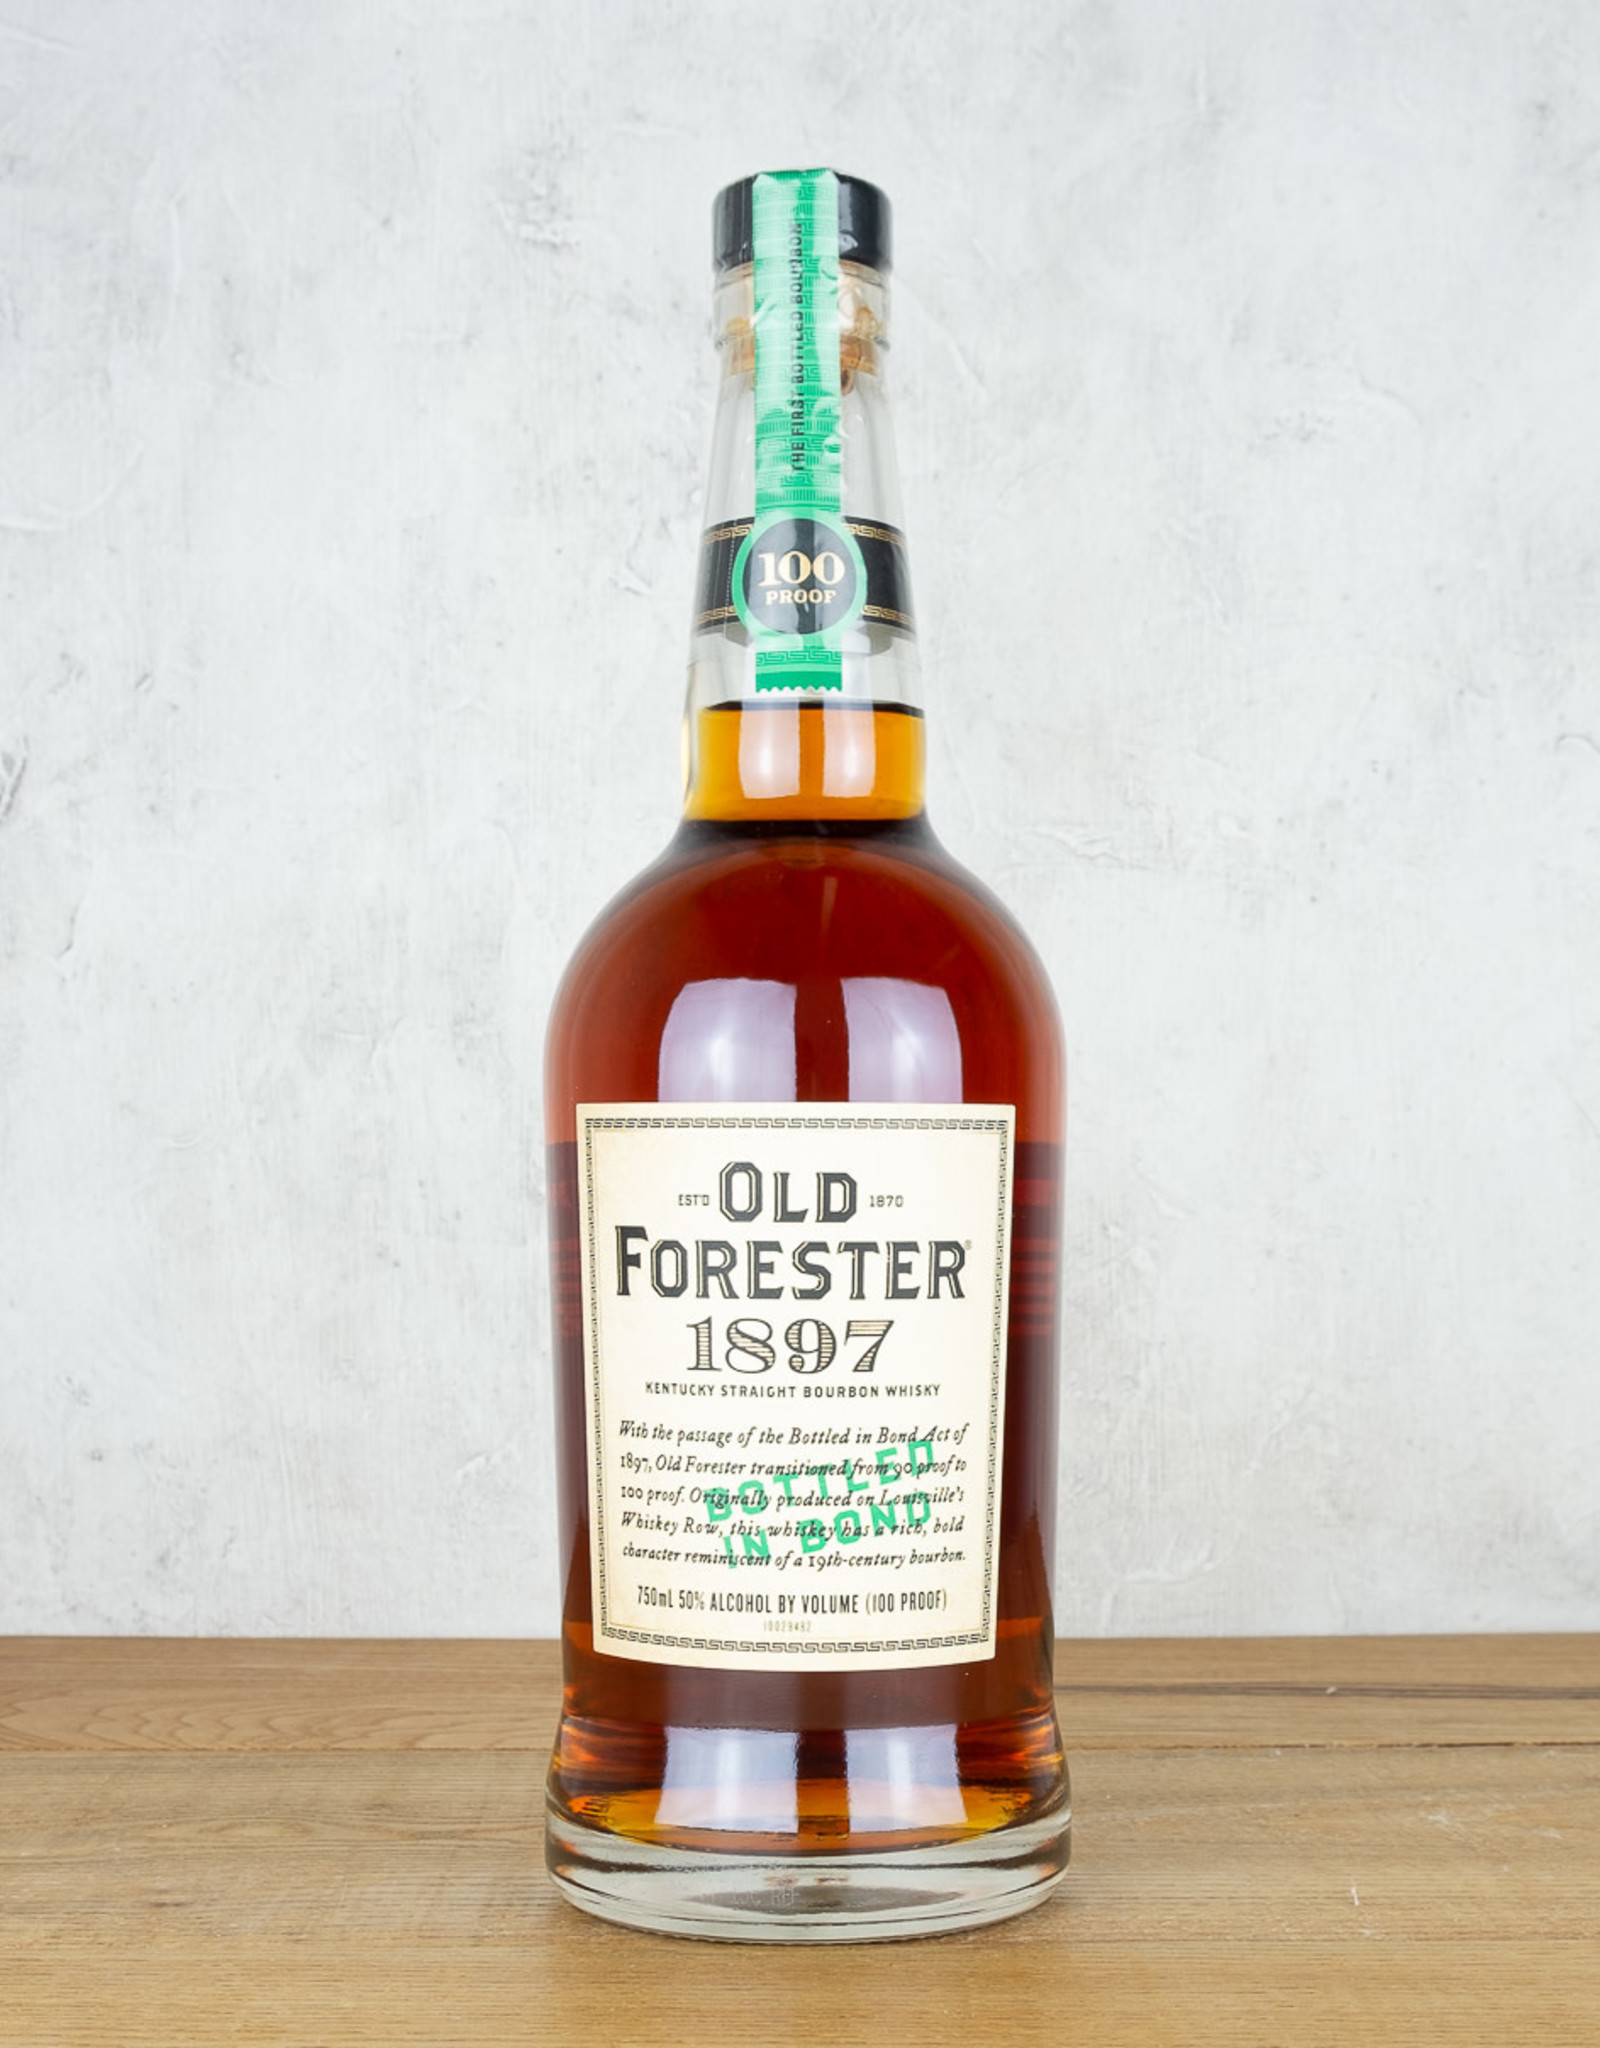 Old Forester 1897 Bourbon